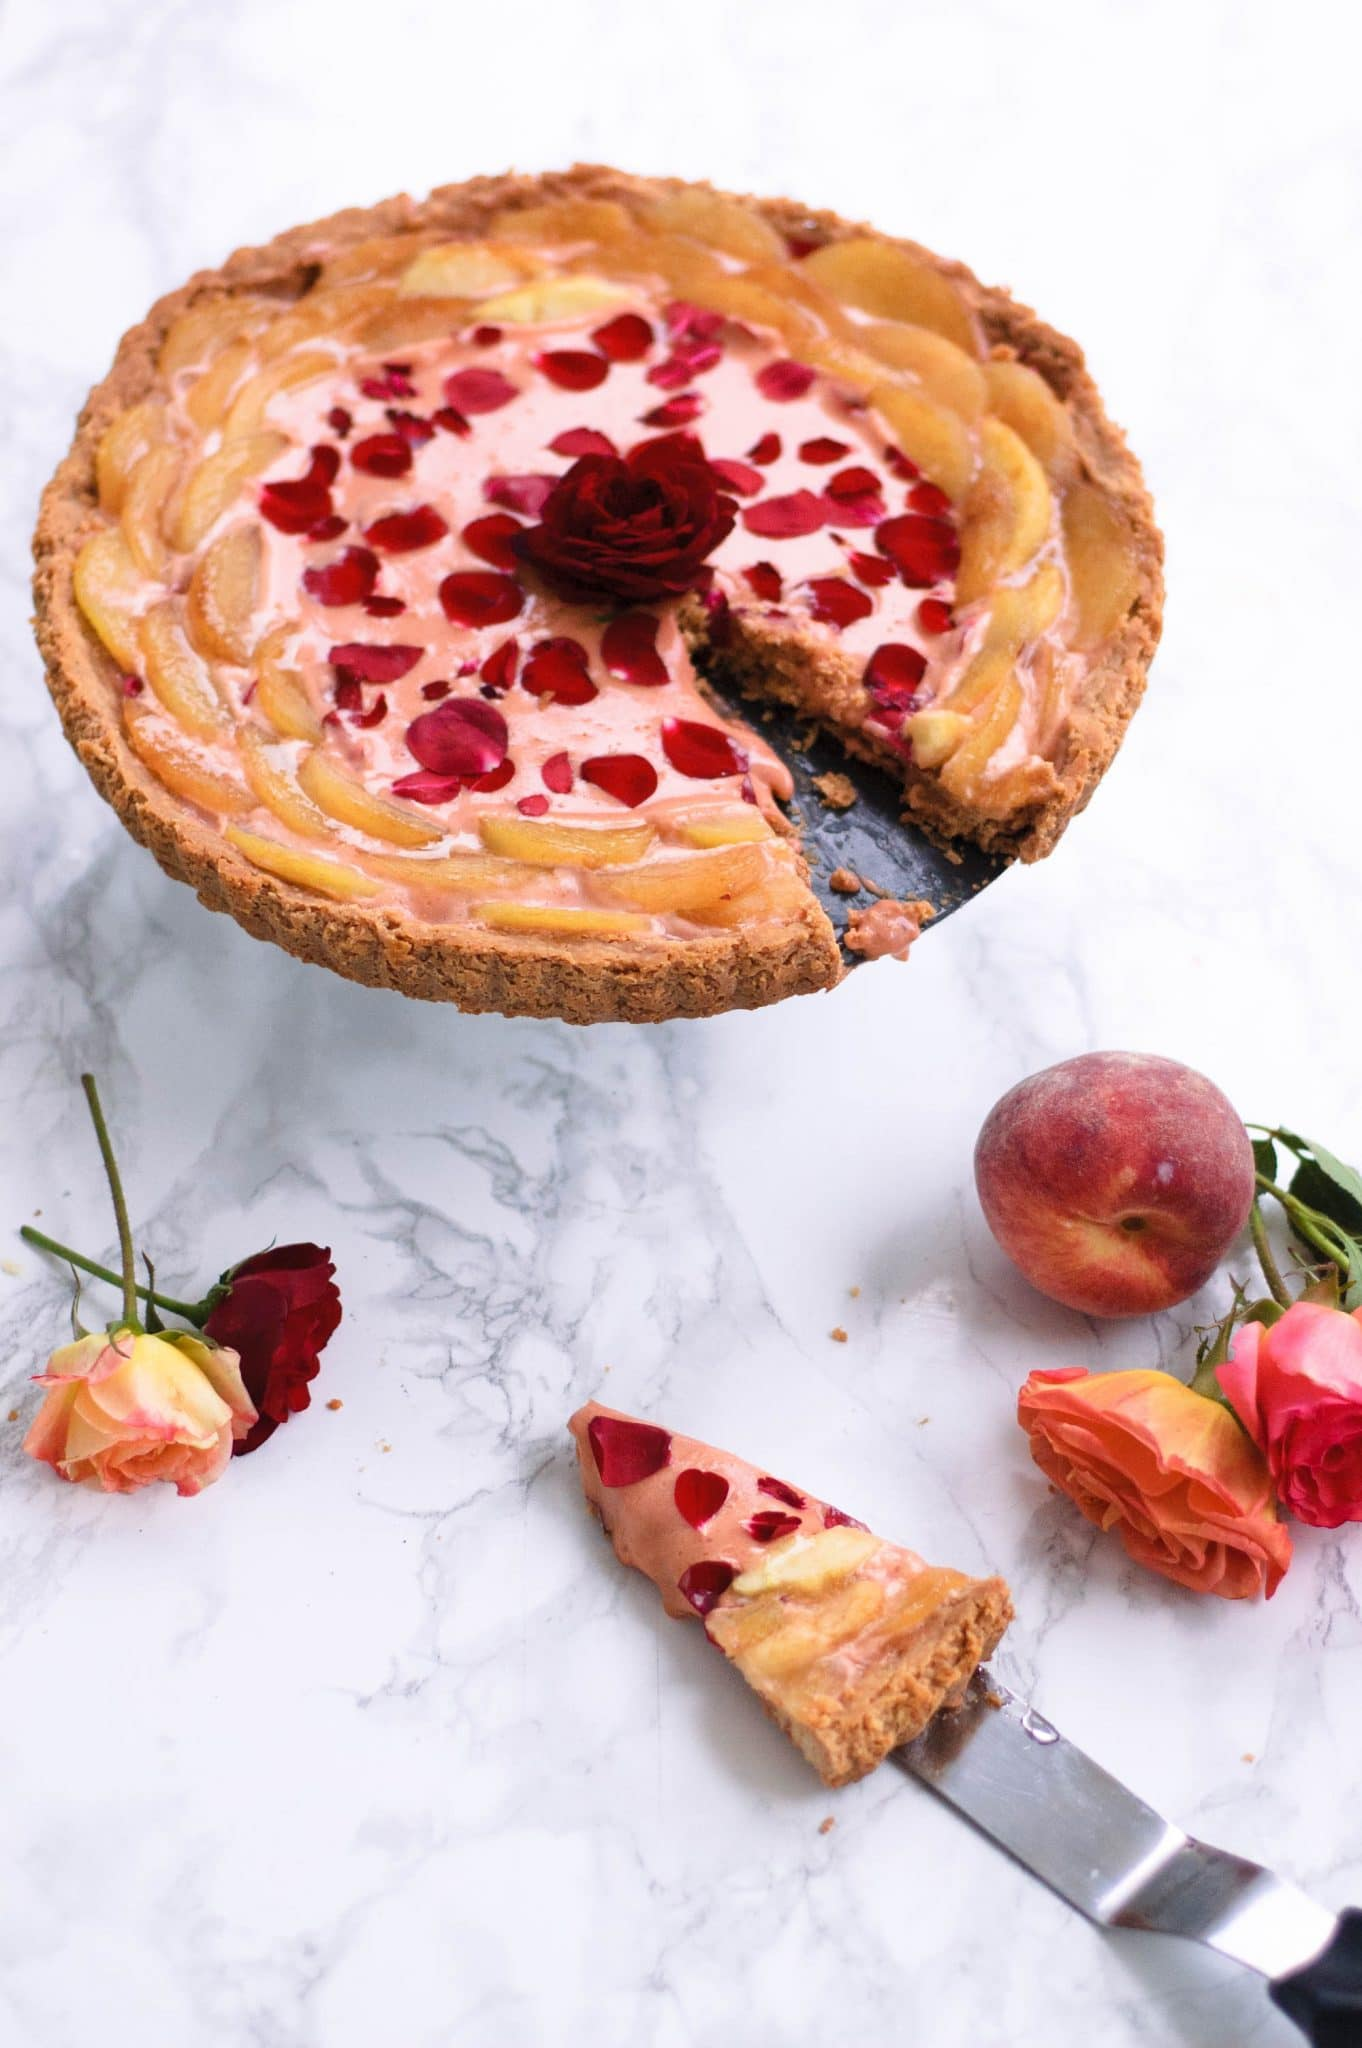 This Rose Curd and White Peach Tart is a beautiful way to enjoy the bounty of spring and summer edible flowers in a beautiful, light, and fresh dessert.